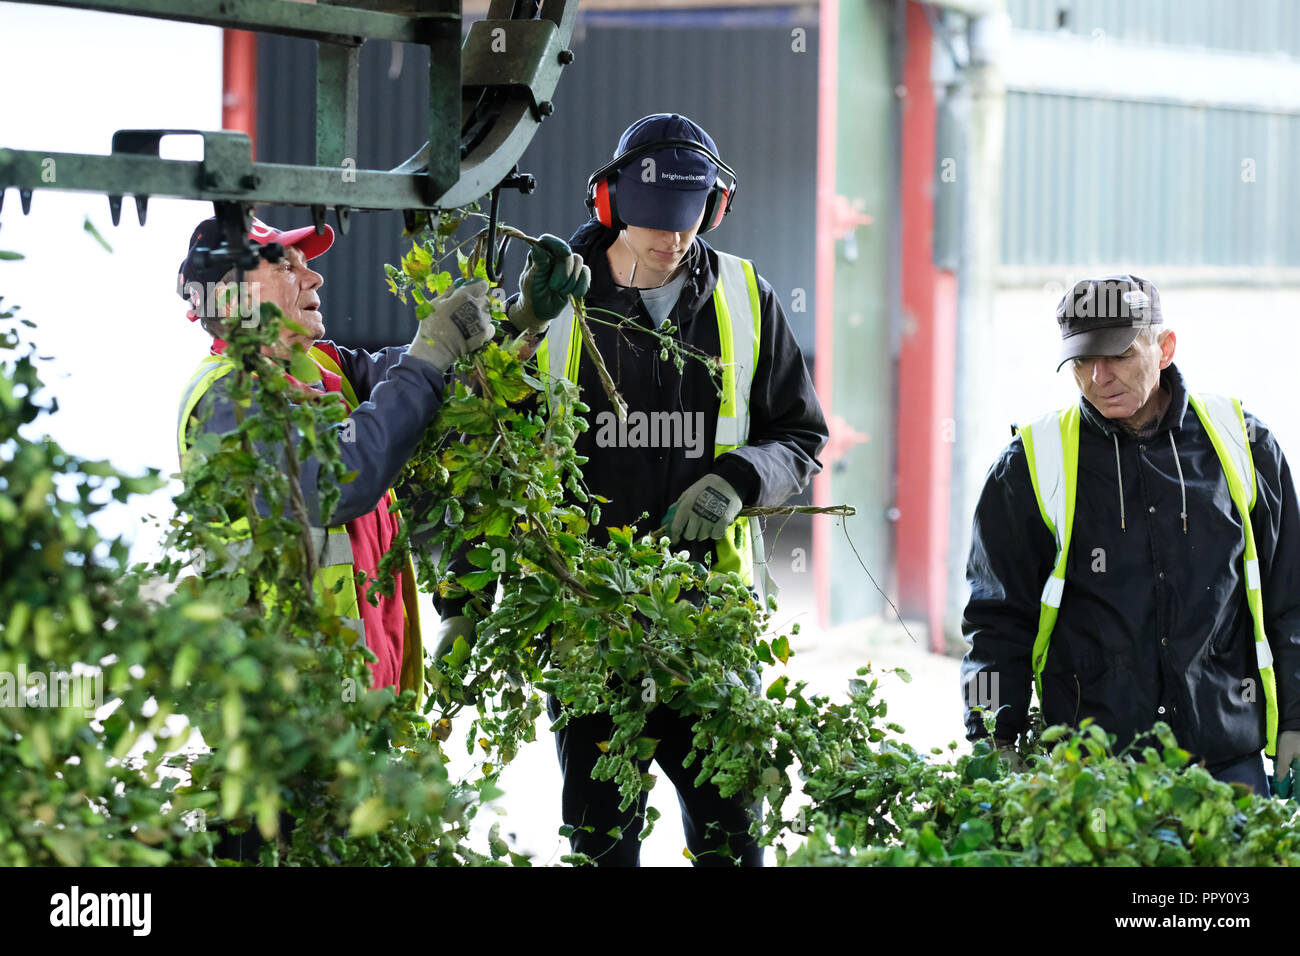 Stocks Farm, Suckley, Worcestershire - Friday 28th September 2018 -  EU seasonal workers from Poland and Bulgaria hanging cut hops ( Jester variety ) for cutting from the bine on an Autumn day- after a long hot dry summer this years hop yield is down on previous years. Growers face uncertainty over next years labour force as Brexit negotiations continue. Photo Steven May / Alamy Live News - Stock Image